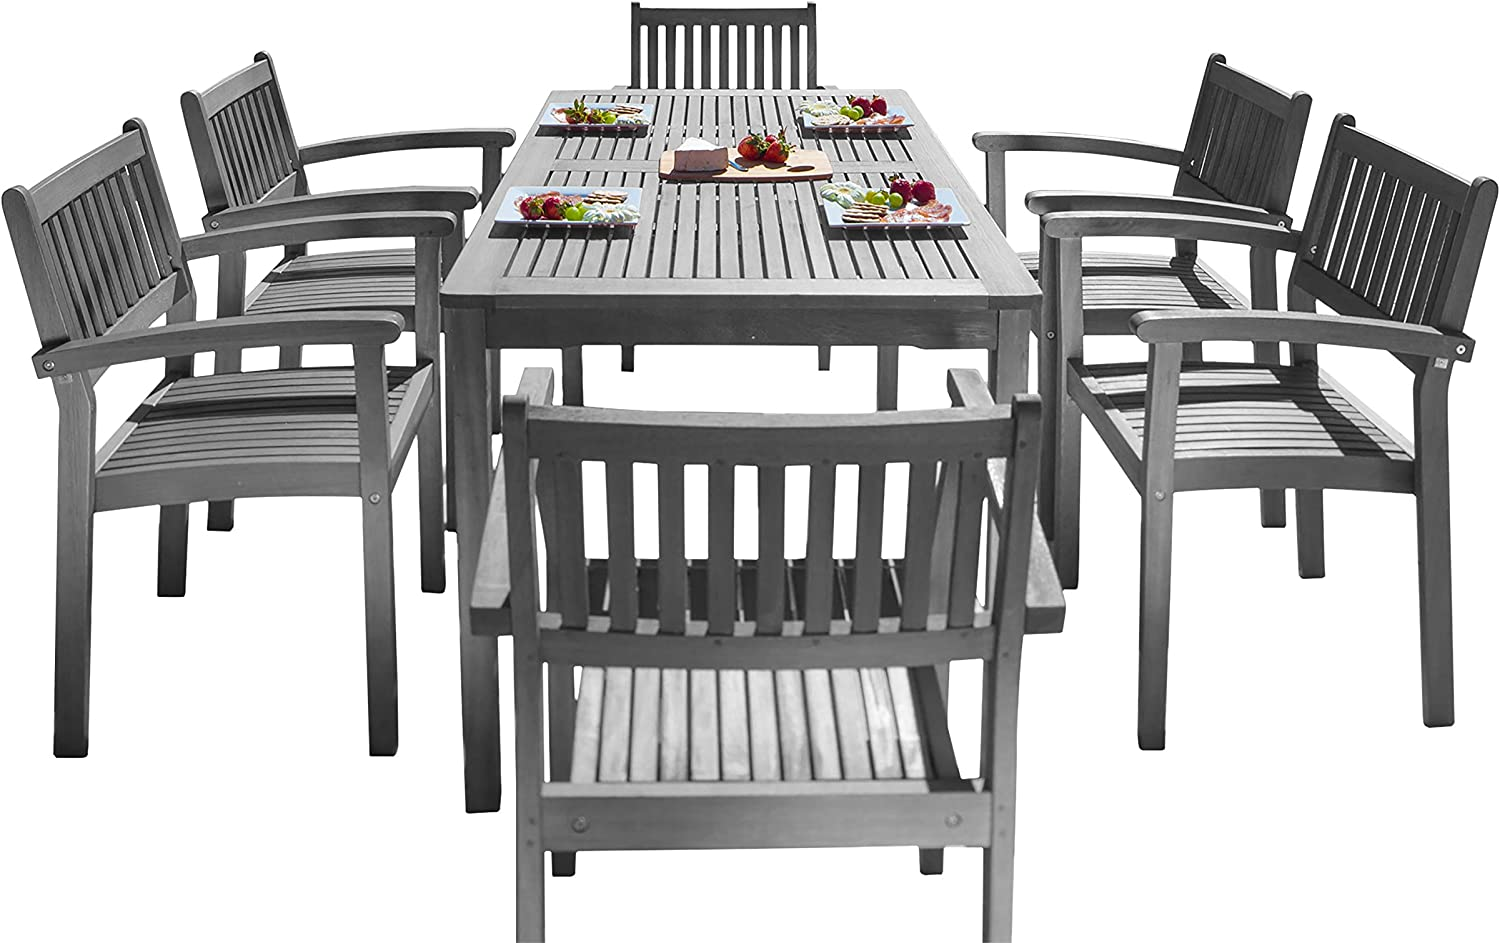 Vifah Renaissance National uniform free shipping Outdoor Patio 7-Piece Wood Dining Hand-Scraped Don't miss the campaign